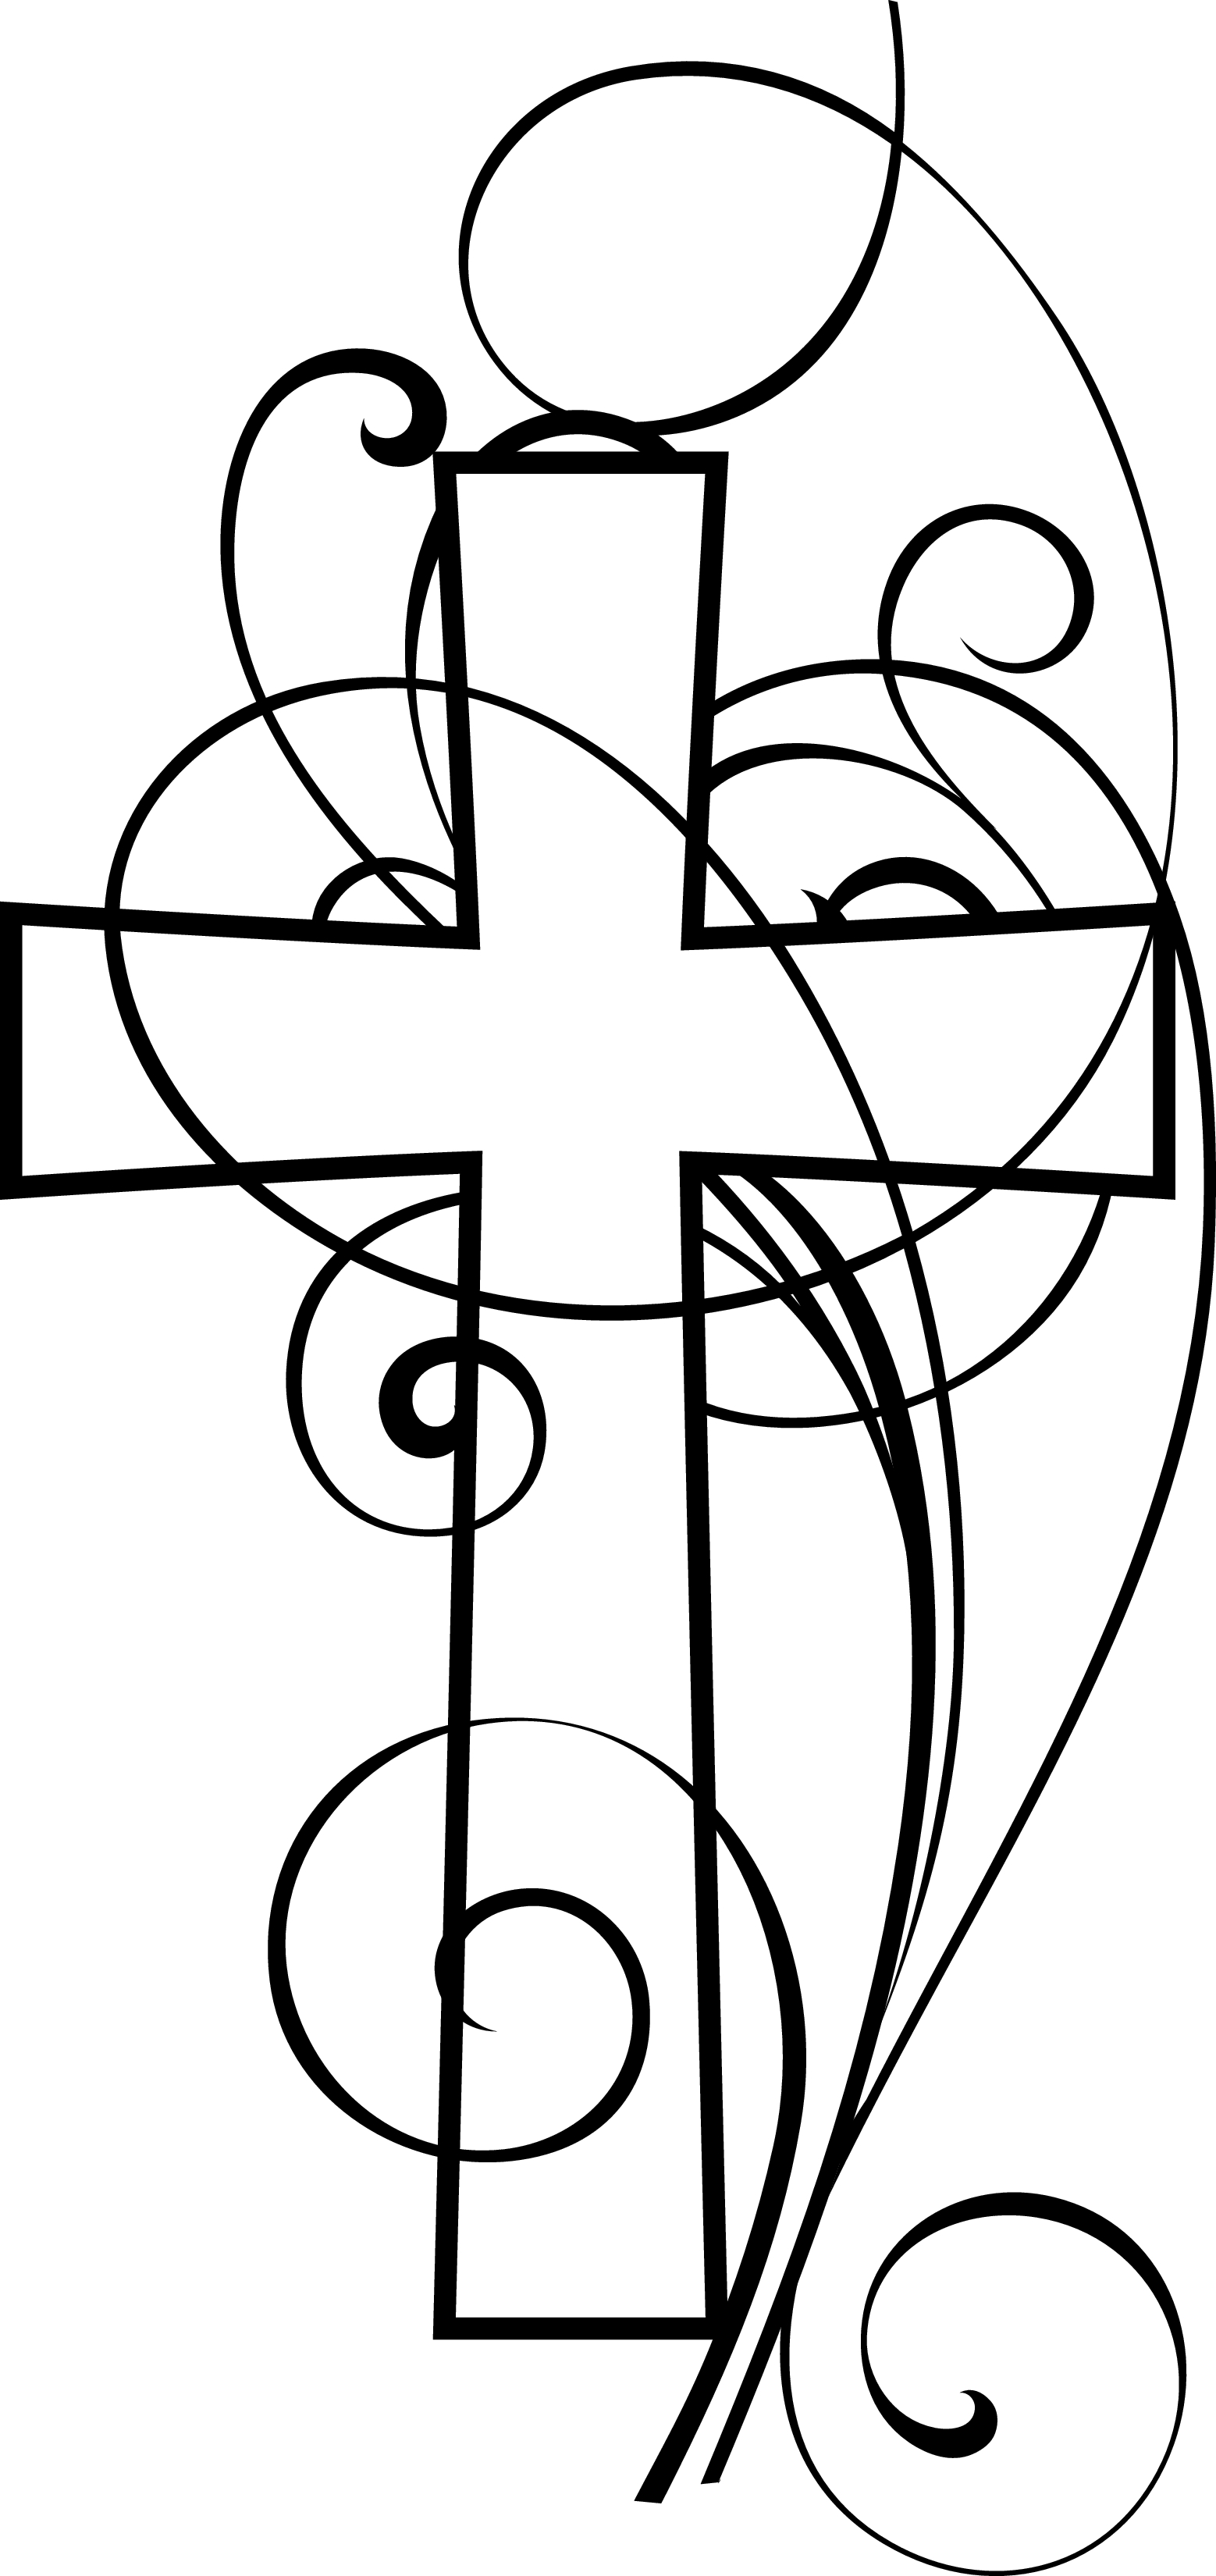 1558x3300 Black And White Cross Clipart